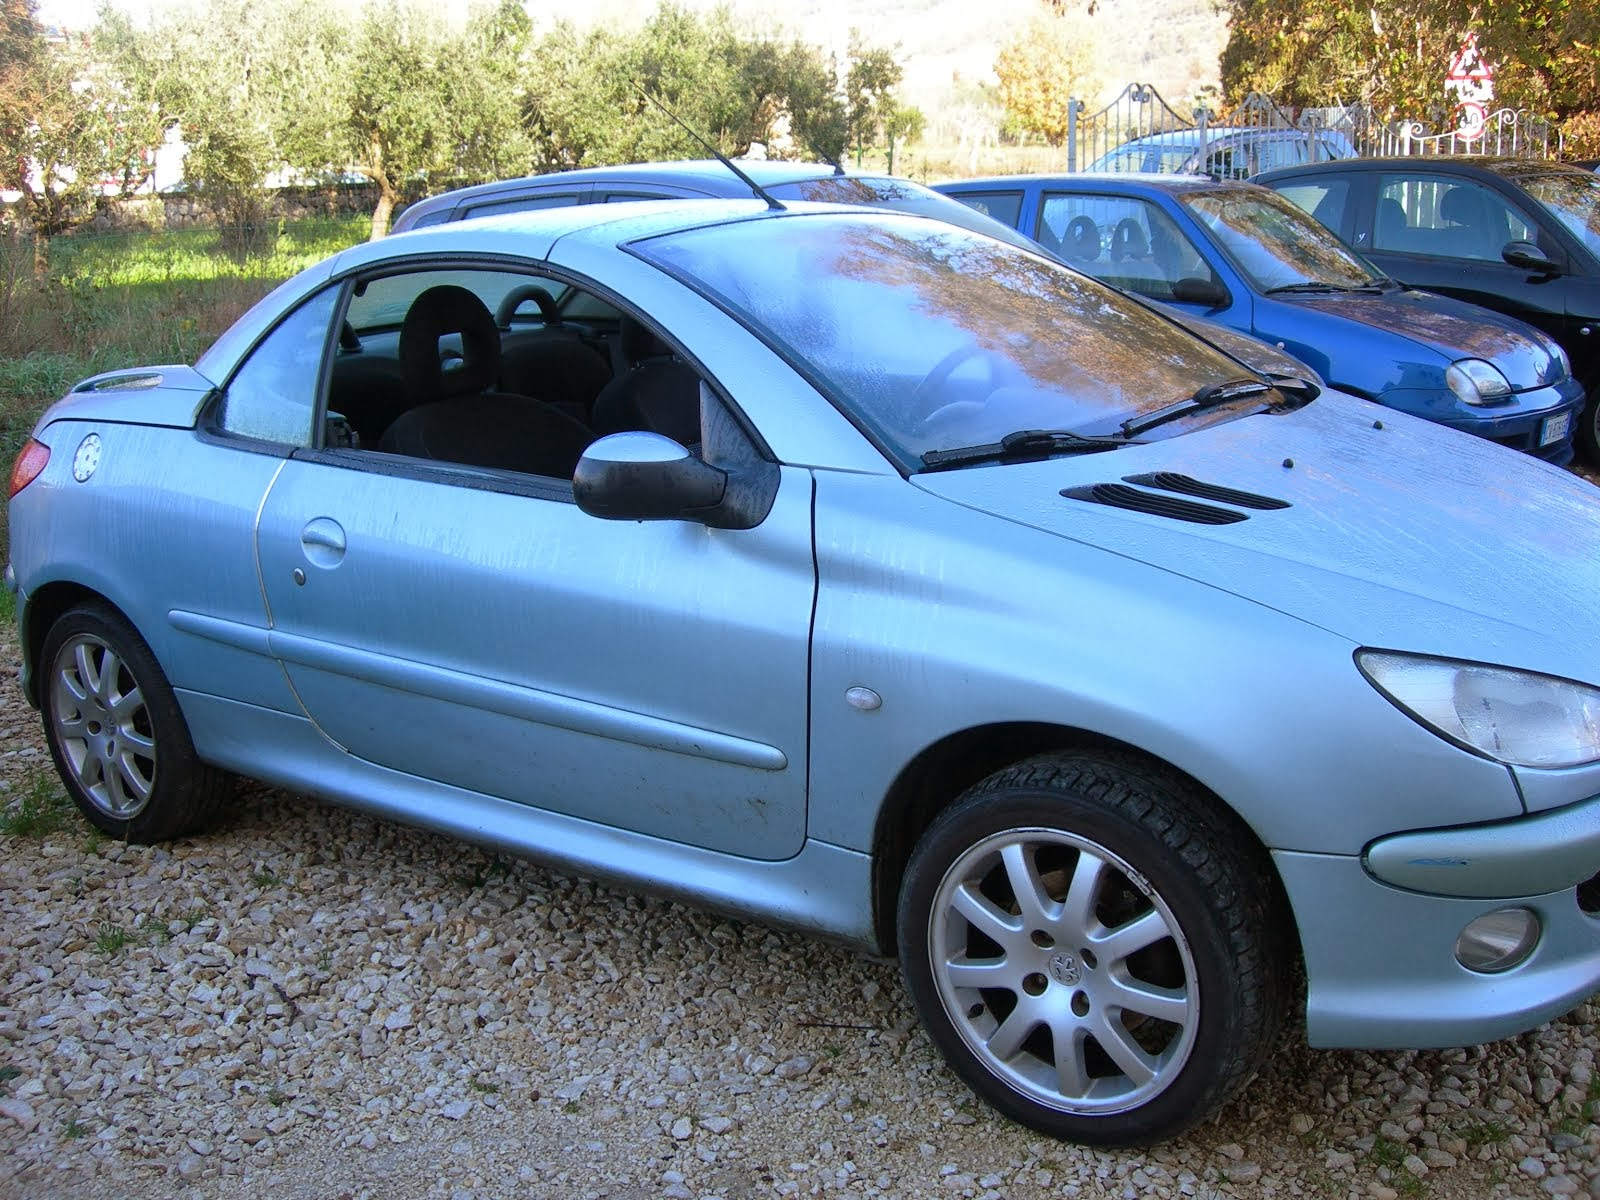 Peugeot 206 C.C 1.6 benzina Anno 2003 full optional 2.500,00 euro